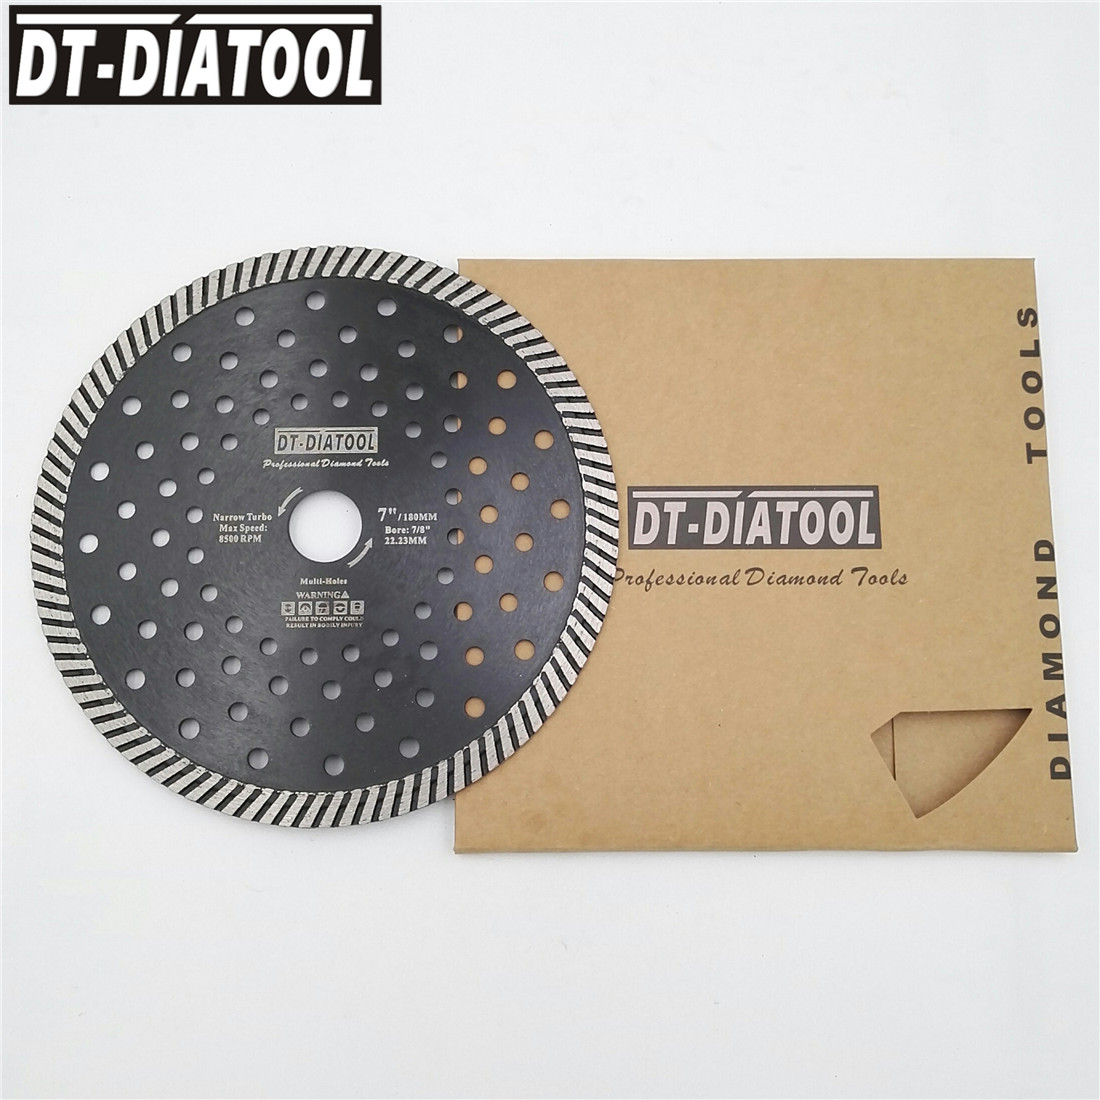 DT-DIATOOL 2pcs Dia 180mm/7inch Diamond Hot Pressed Narrow Diamond Turbo Blades Cutting Disc For Granite Marble Saw Blades